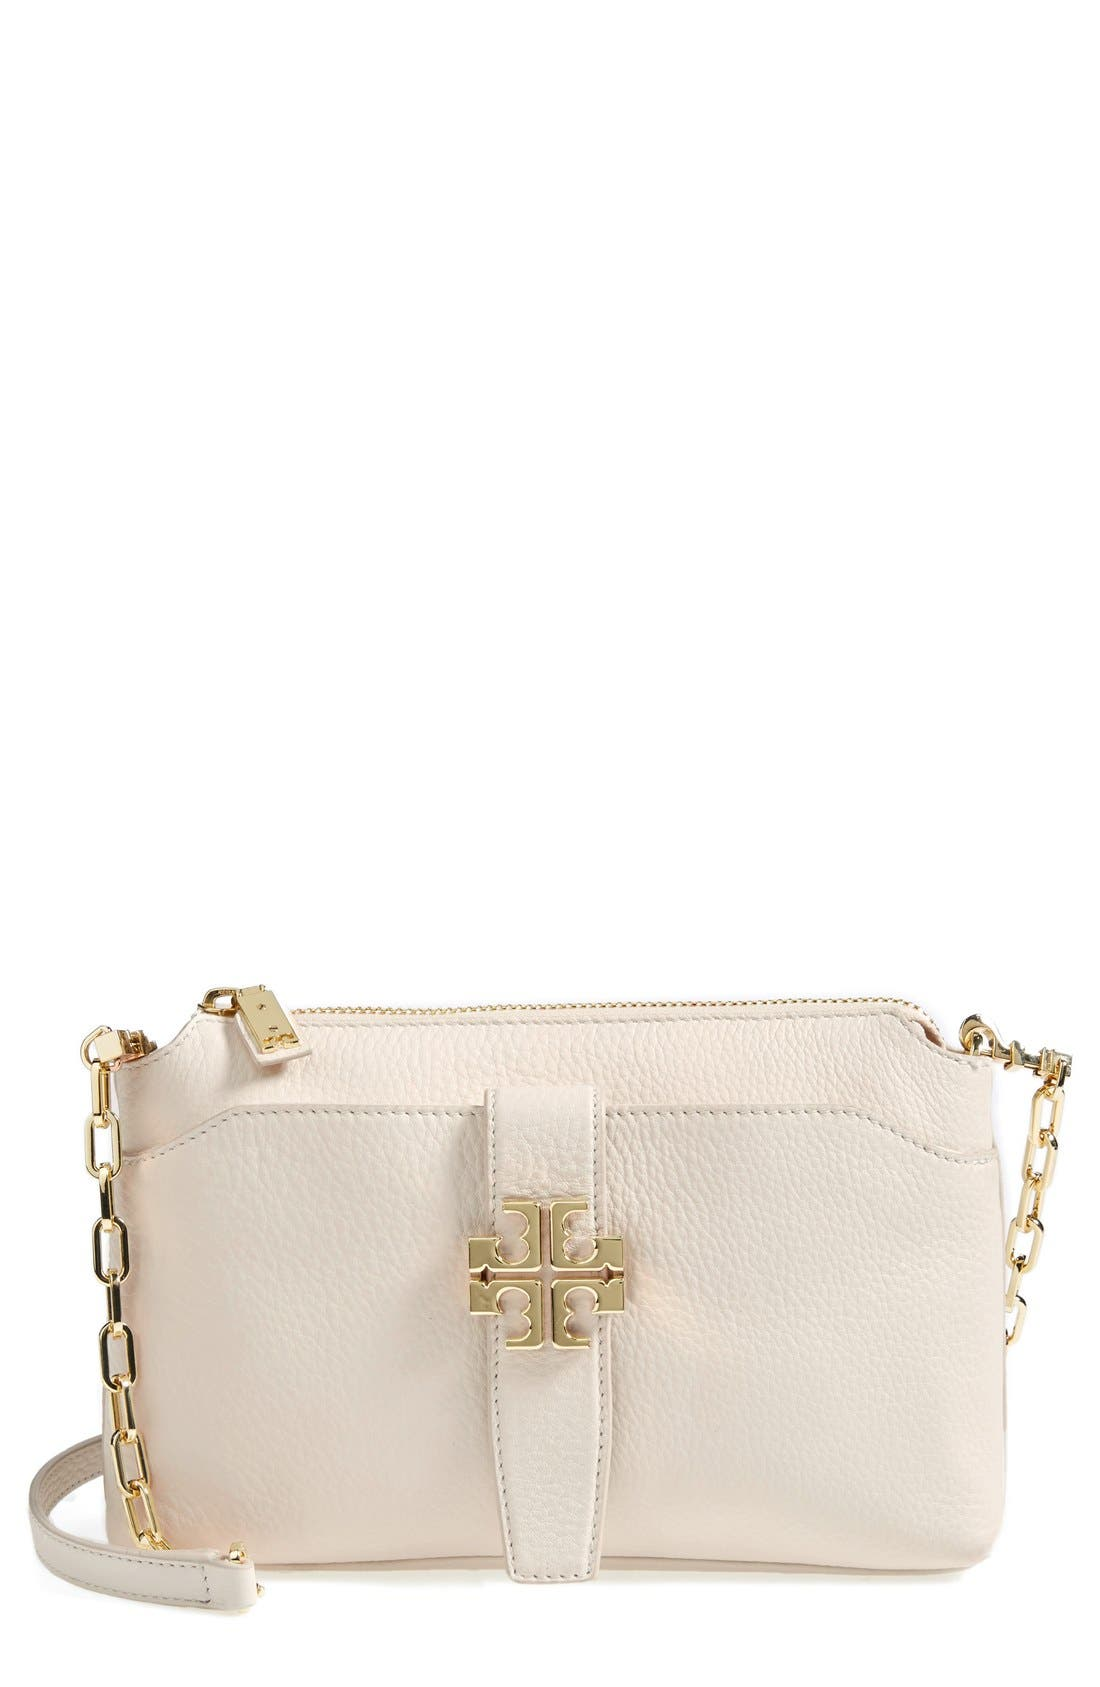 Main Image - Tory Burch 'Plaque' Crossbody Bag